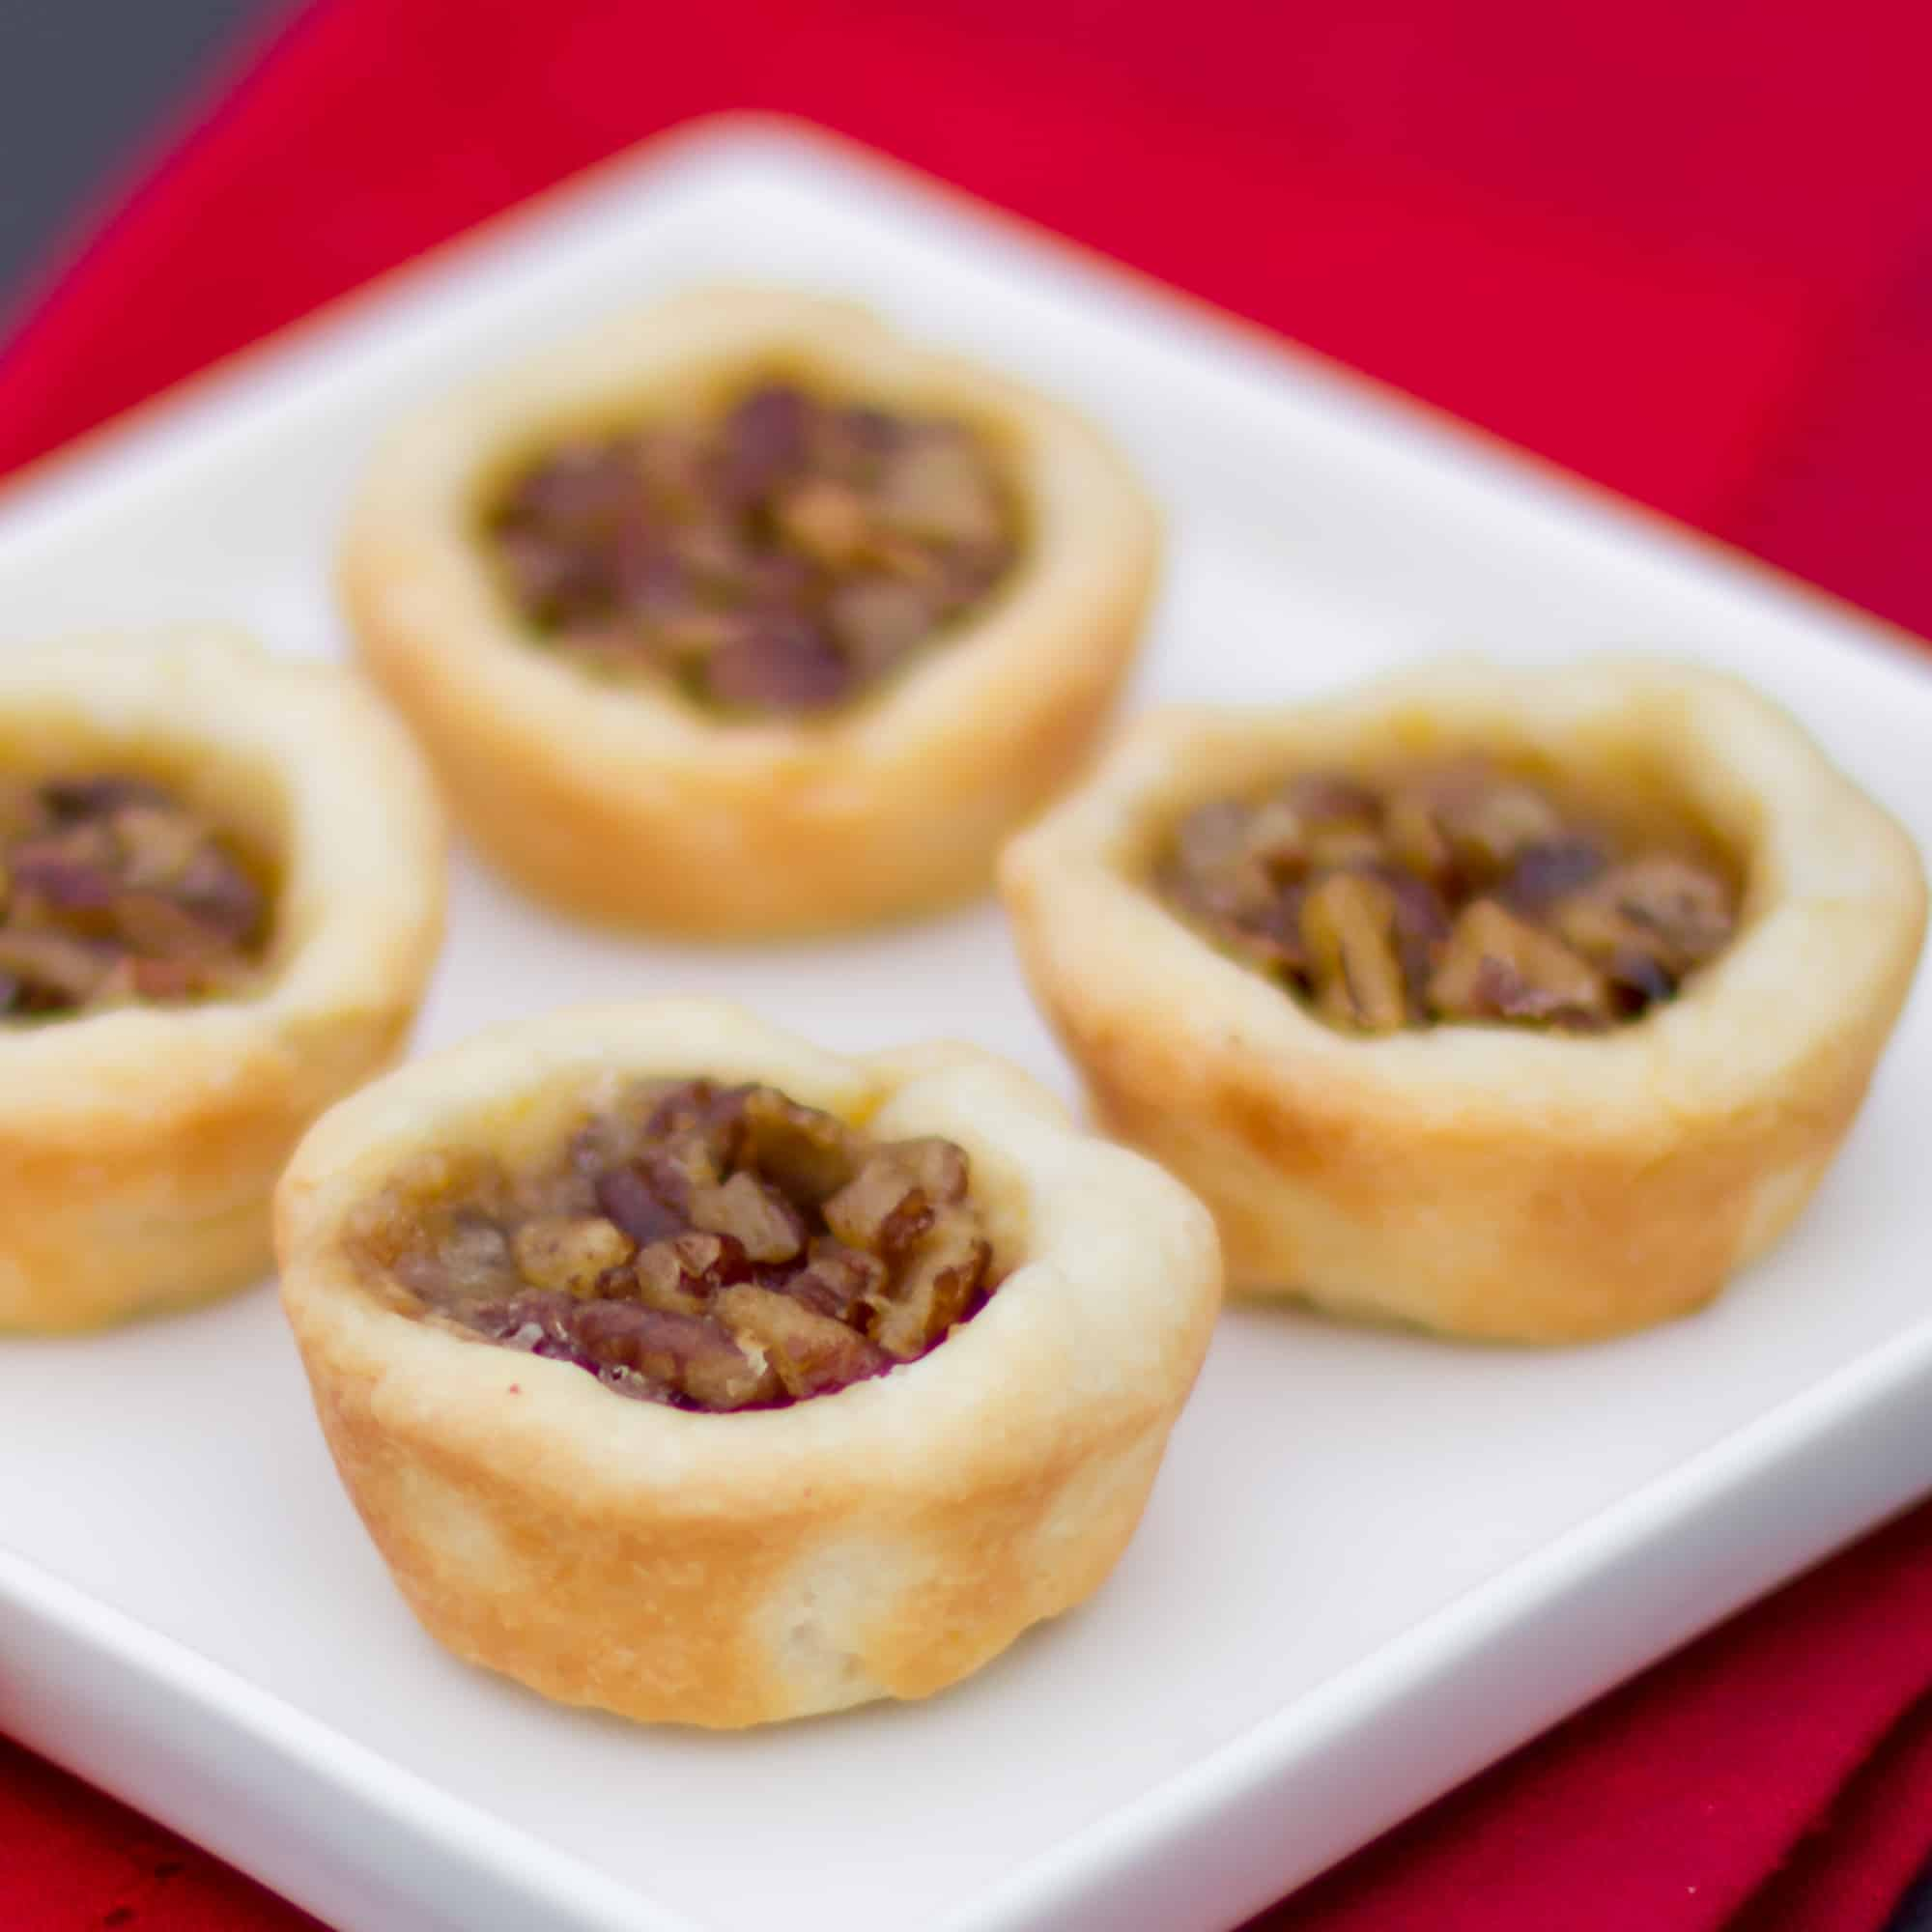 Maple syrup and pecans make up the filling in these mini tarts tassies that are simple and delicious. Cream cheese and butter pastry.